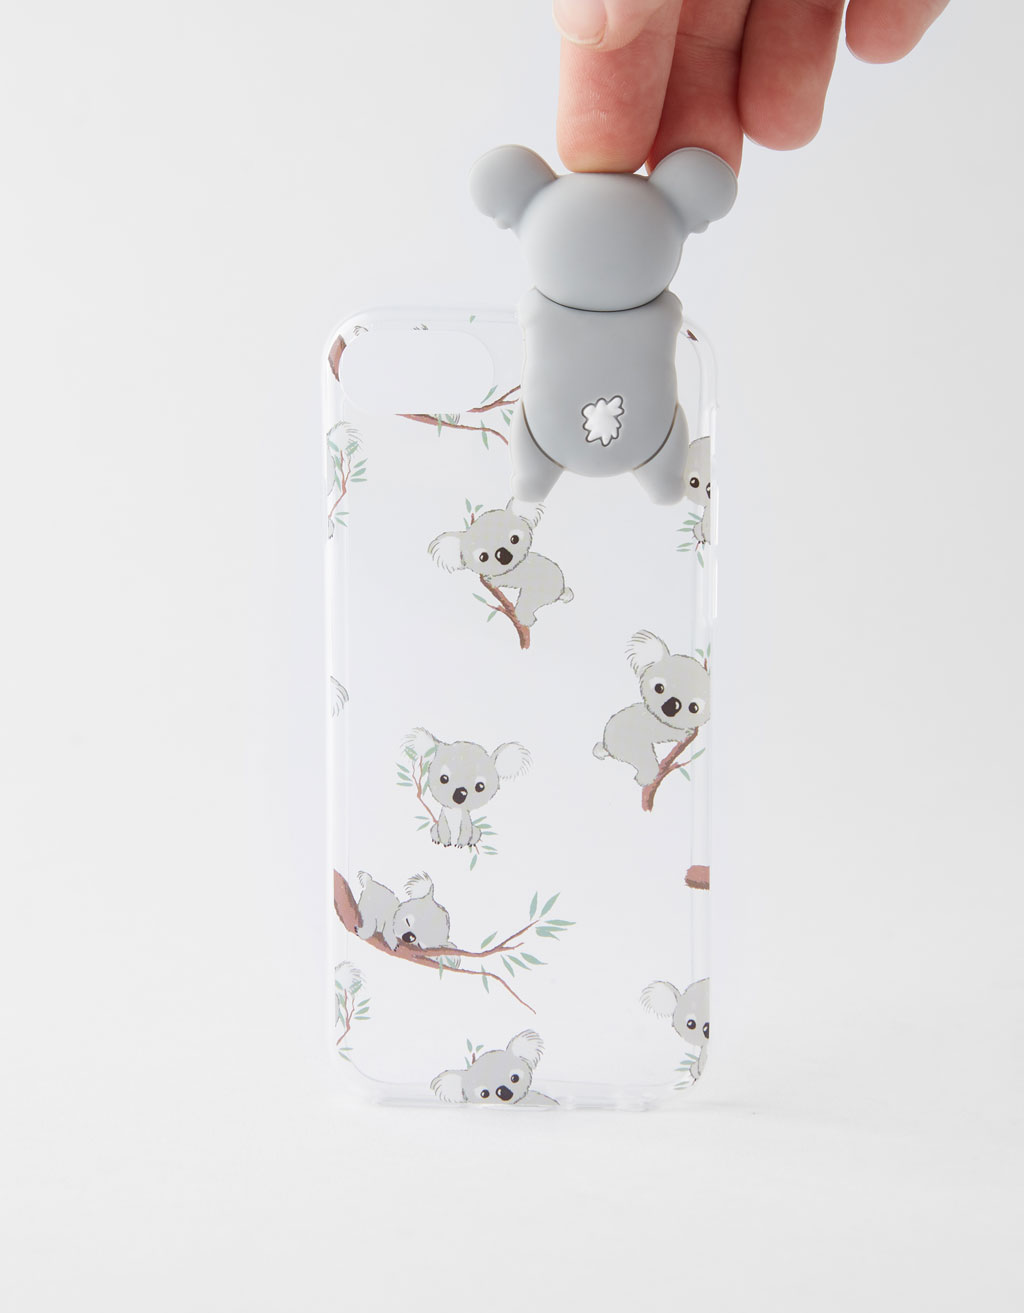 Transparent iPhone 6plus / 7plus / 8plus case